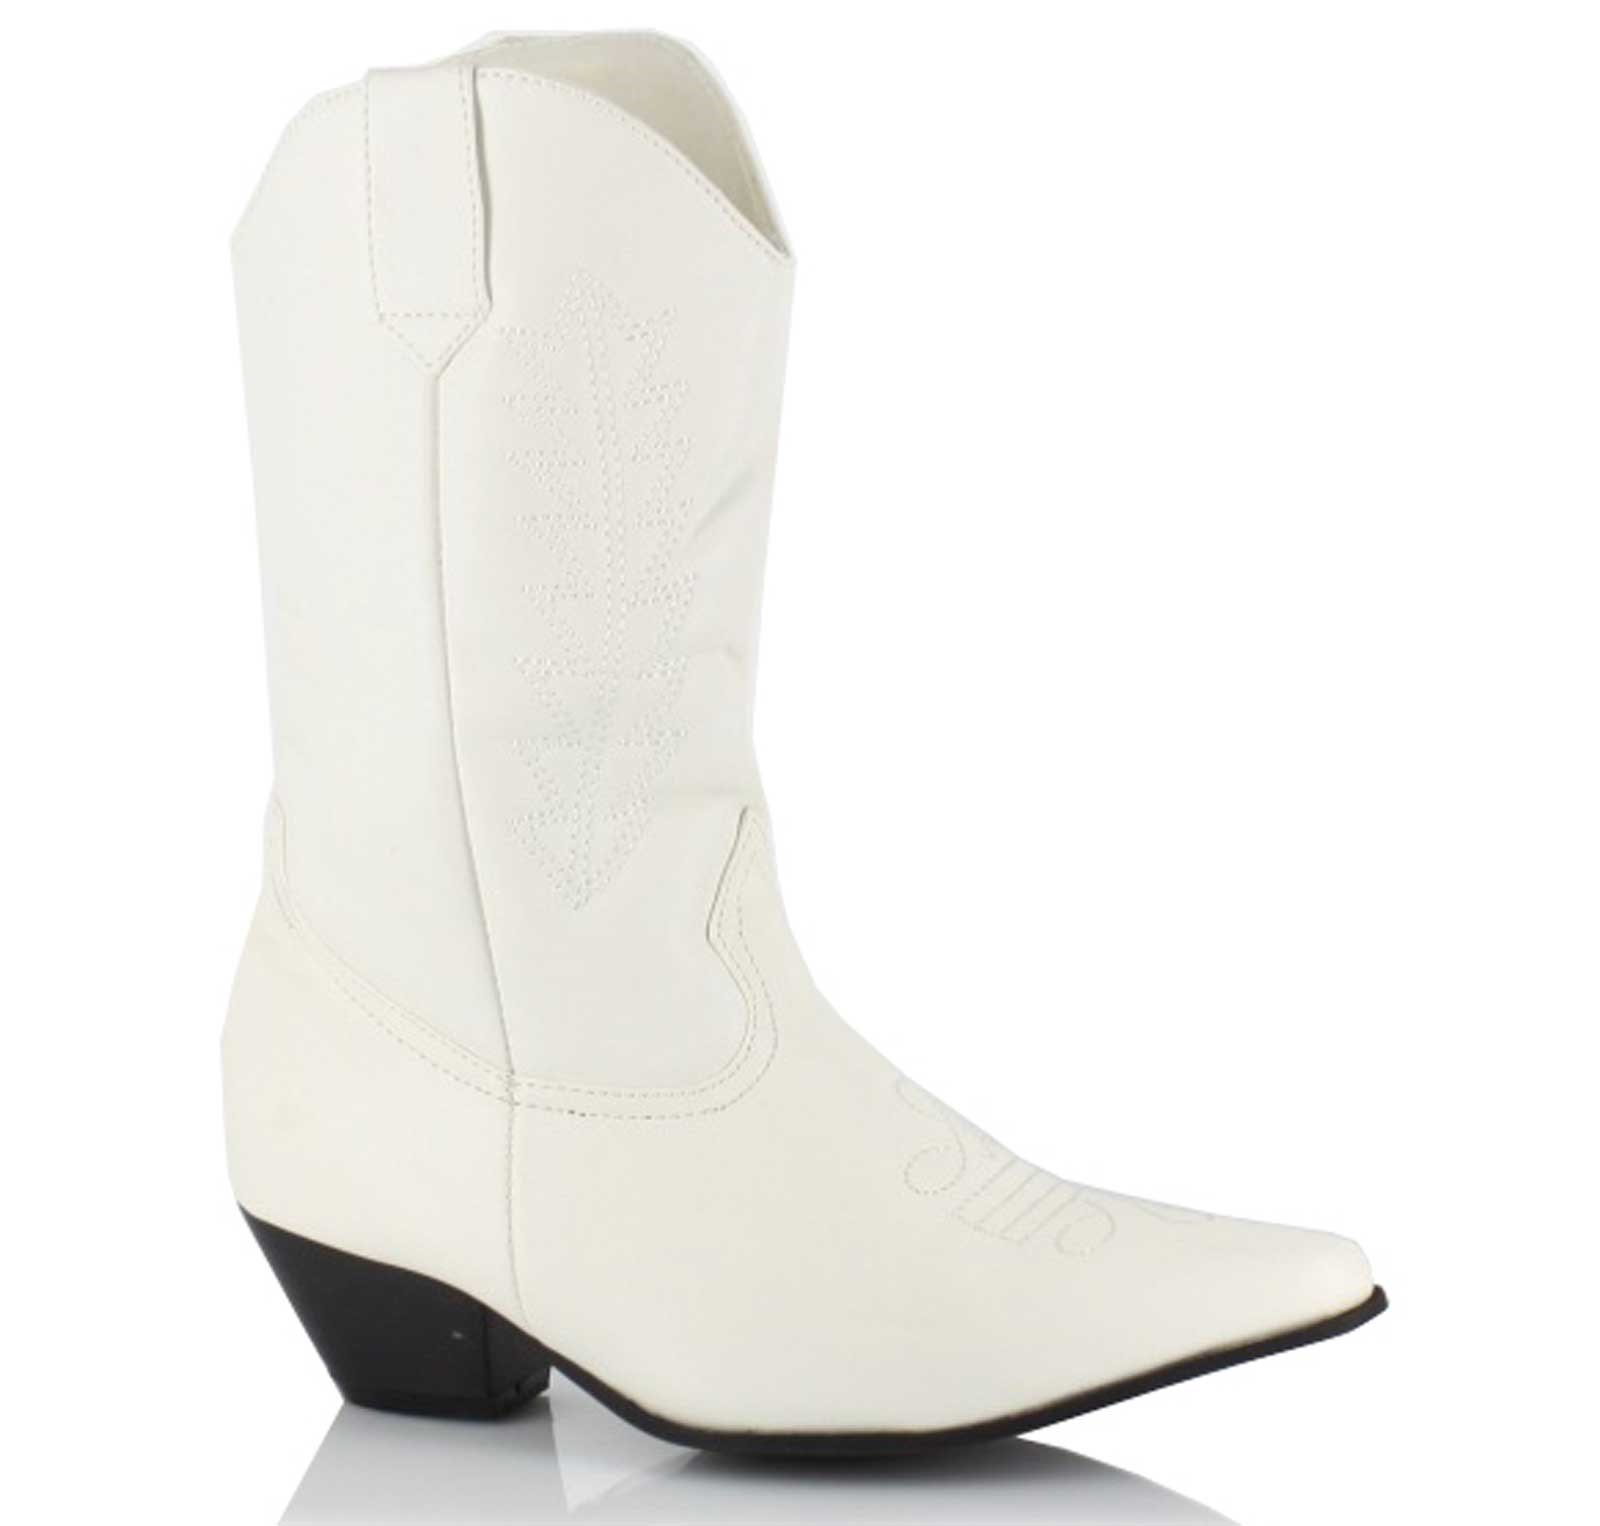 Cowboy Boots (White) Child Small (11/12)